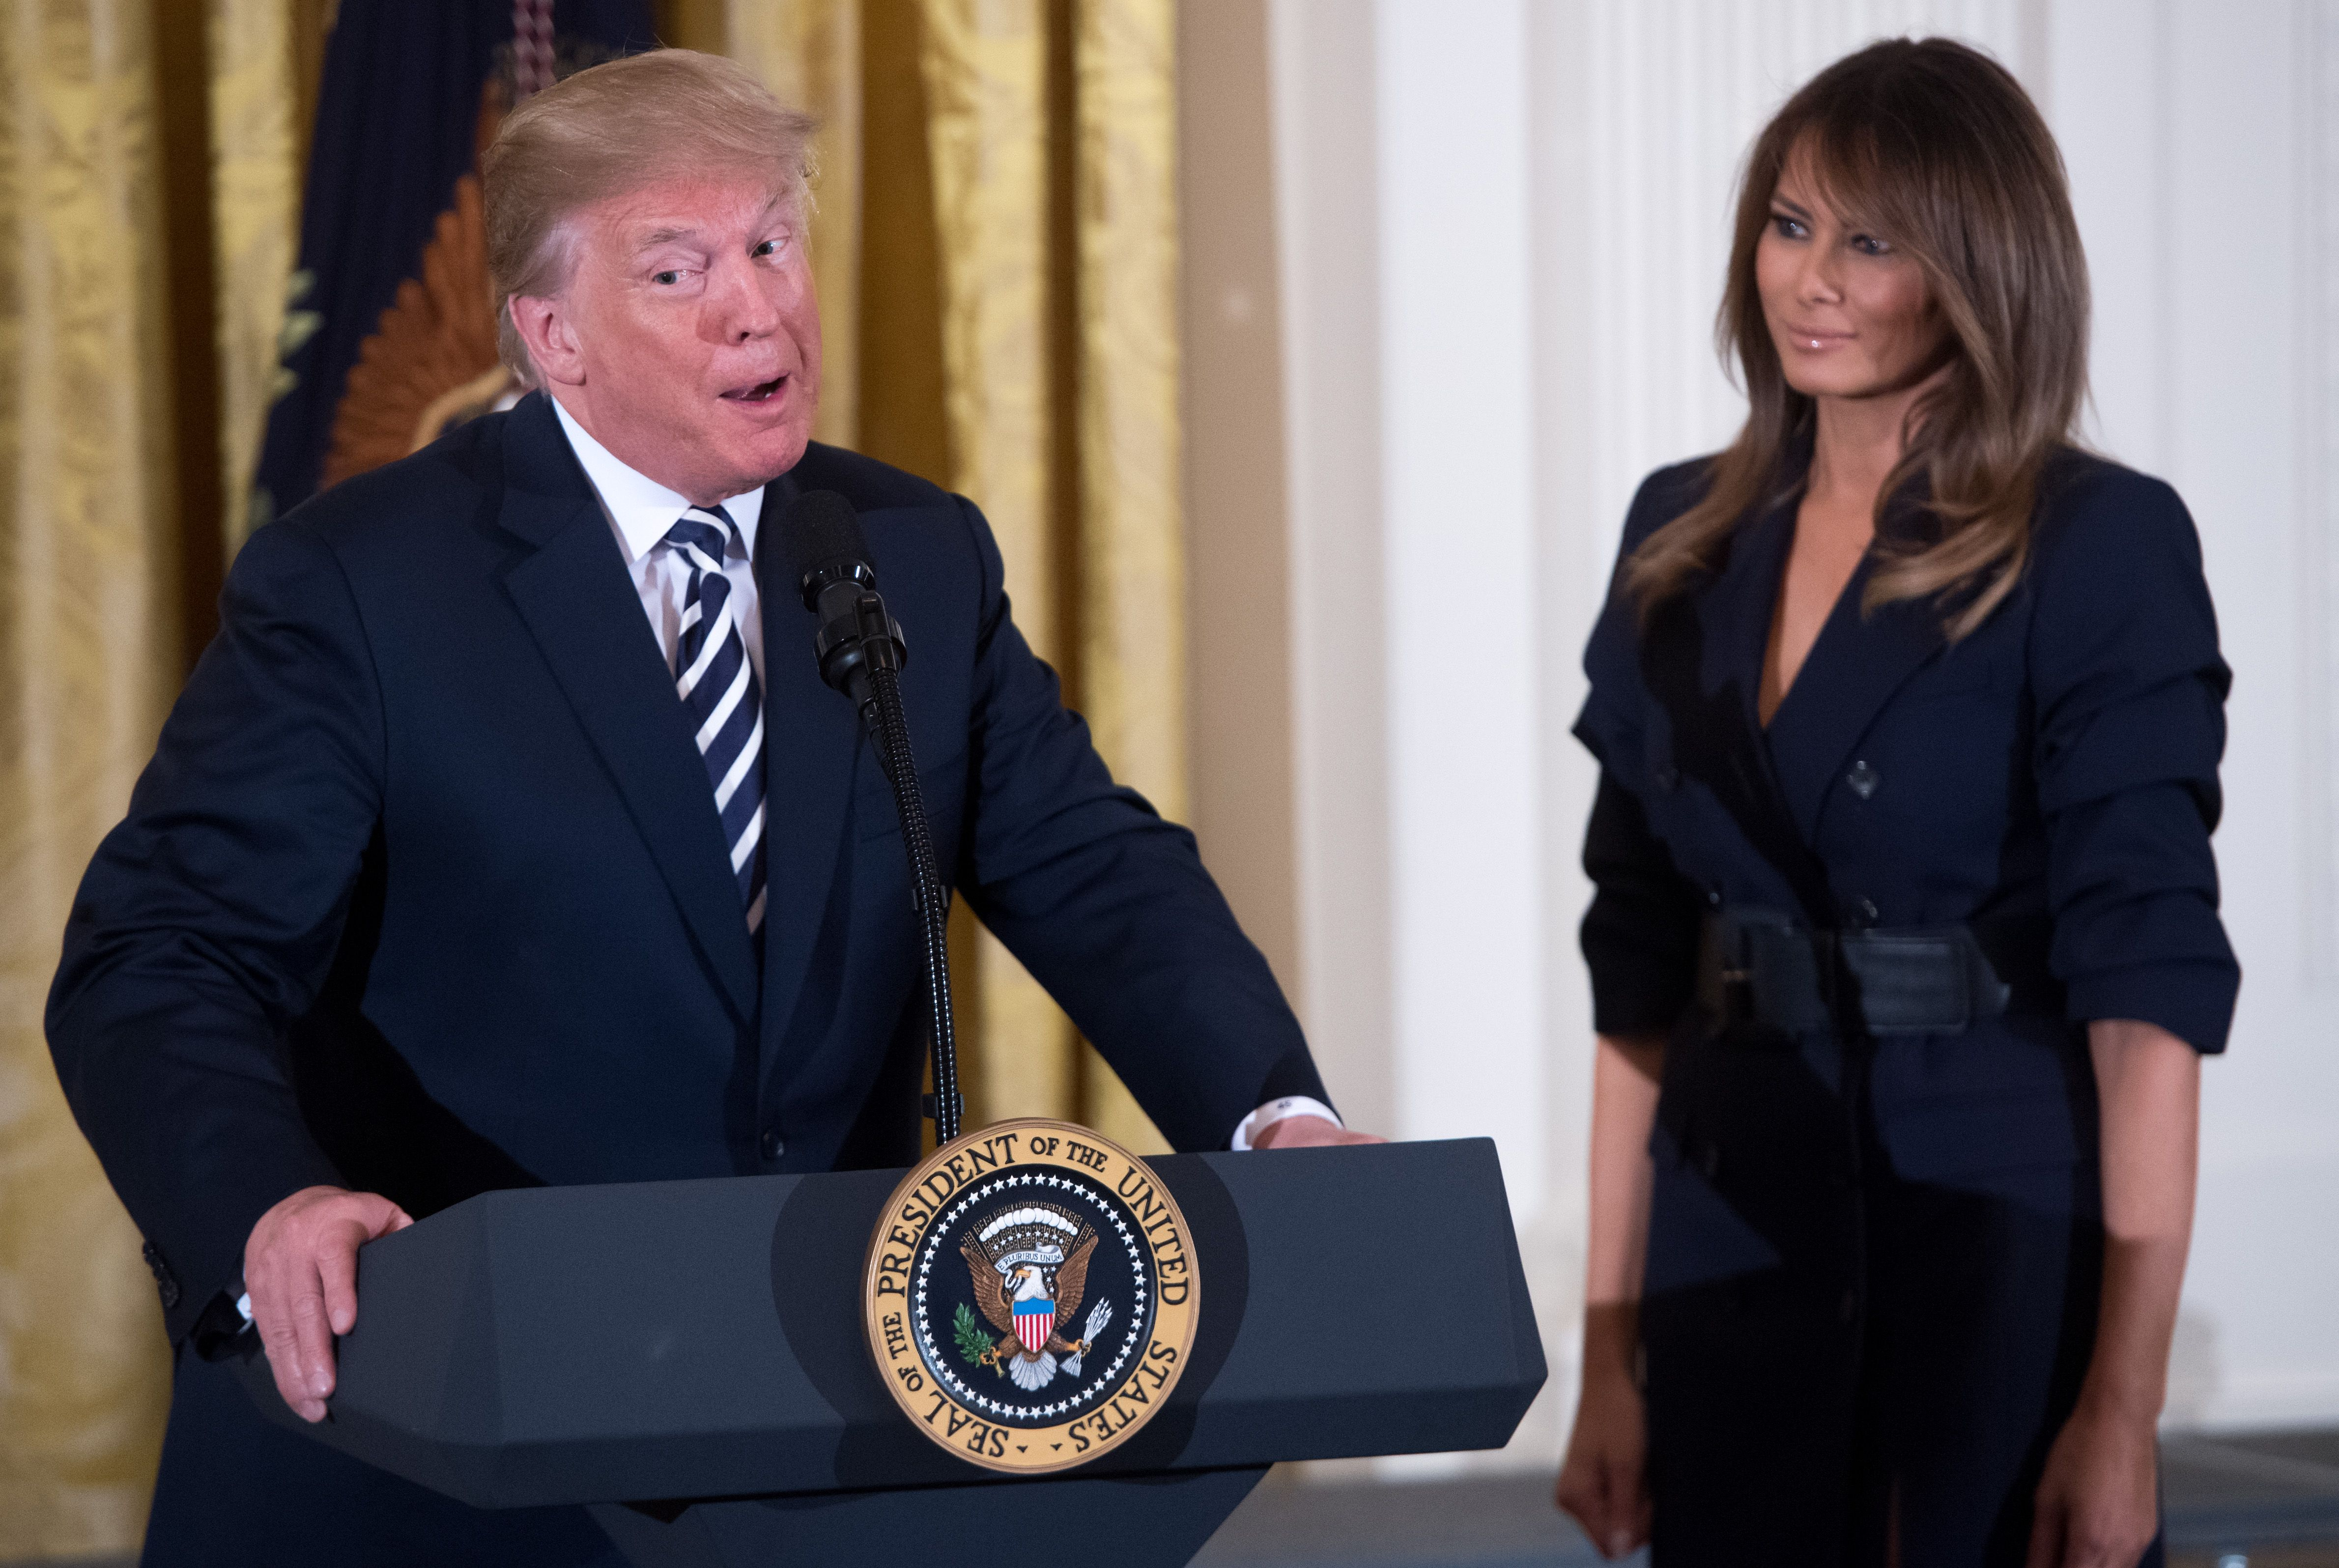 US President Donald Trump speaks alongside First Lady Melania Trump (R) during an event in honor of Military Mothers and Spouses in the East Room of the White House in Washington, DC, May 9, 2018. (Photo by SAUL LOEB / AFP) (Photo credit should read SAUL LOEB/AFP/Getty Images)